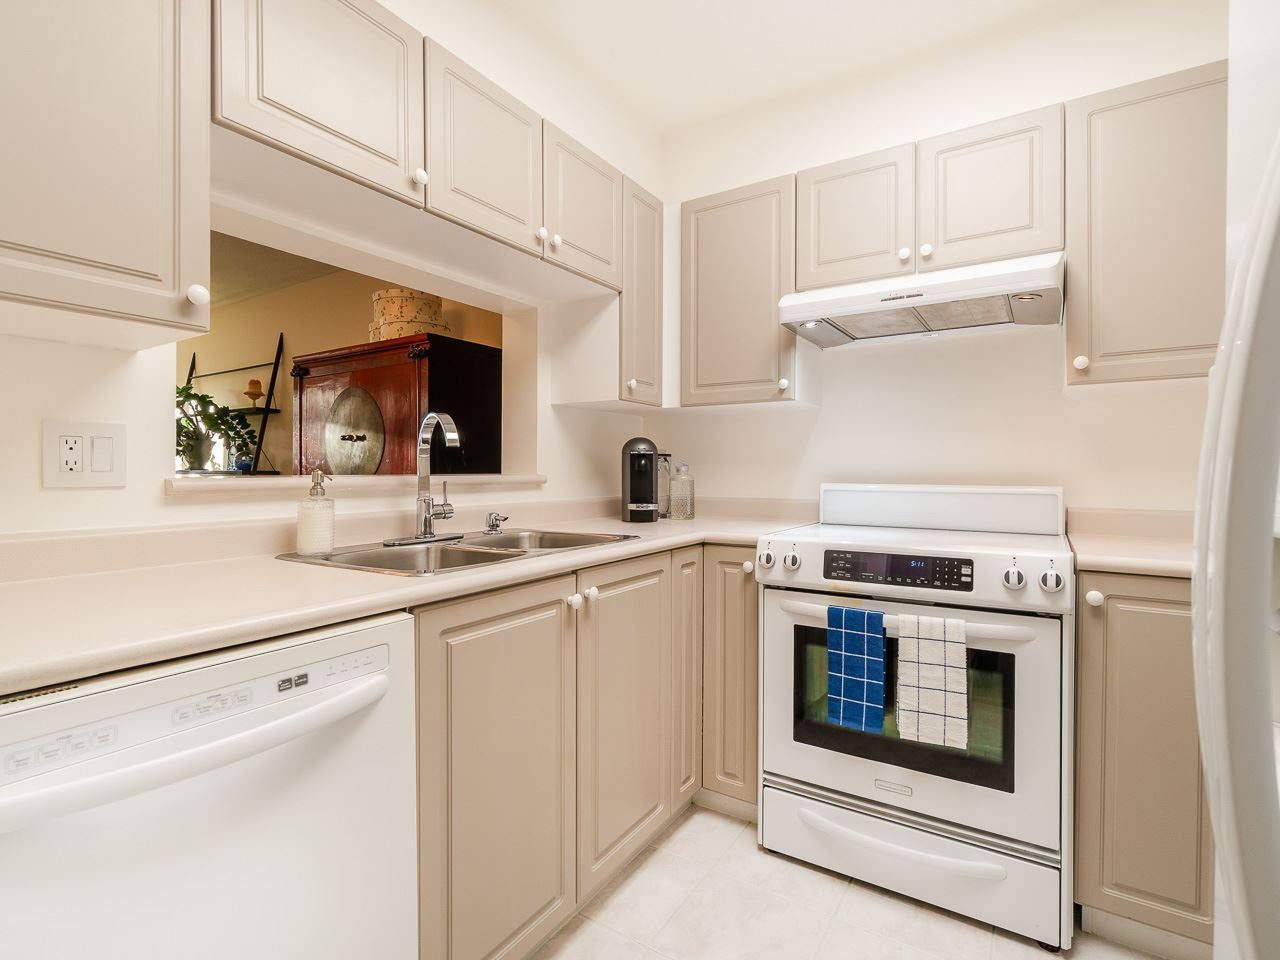 306 2105 W 42ND AVENUE - Kerrisdale Apartment/Condo for sale, 1 Bedroom (R2511504) - #13